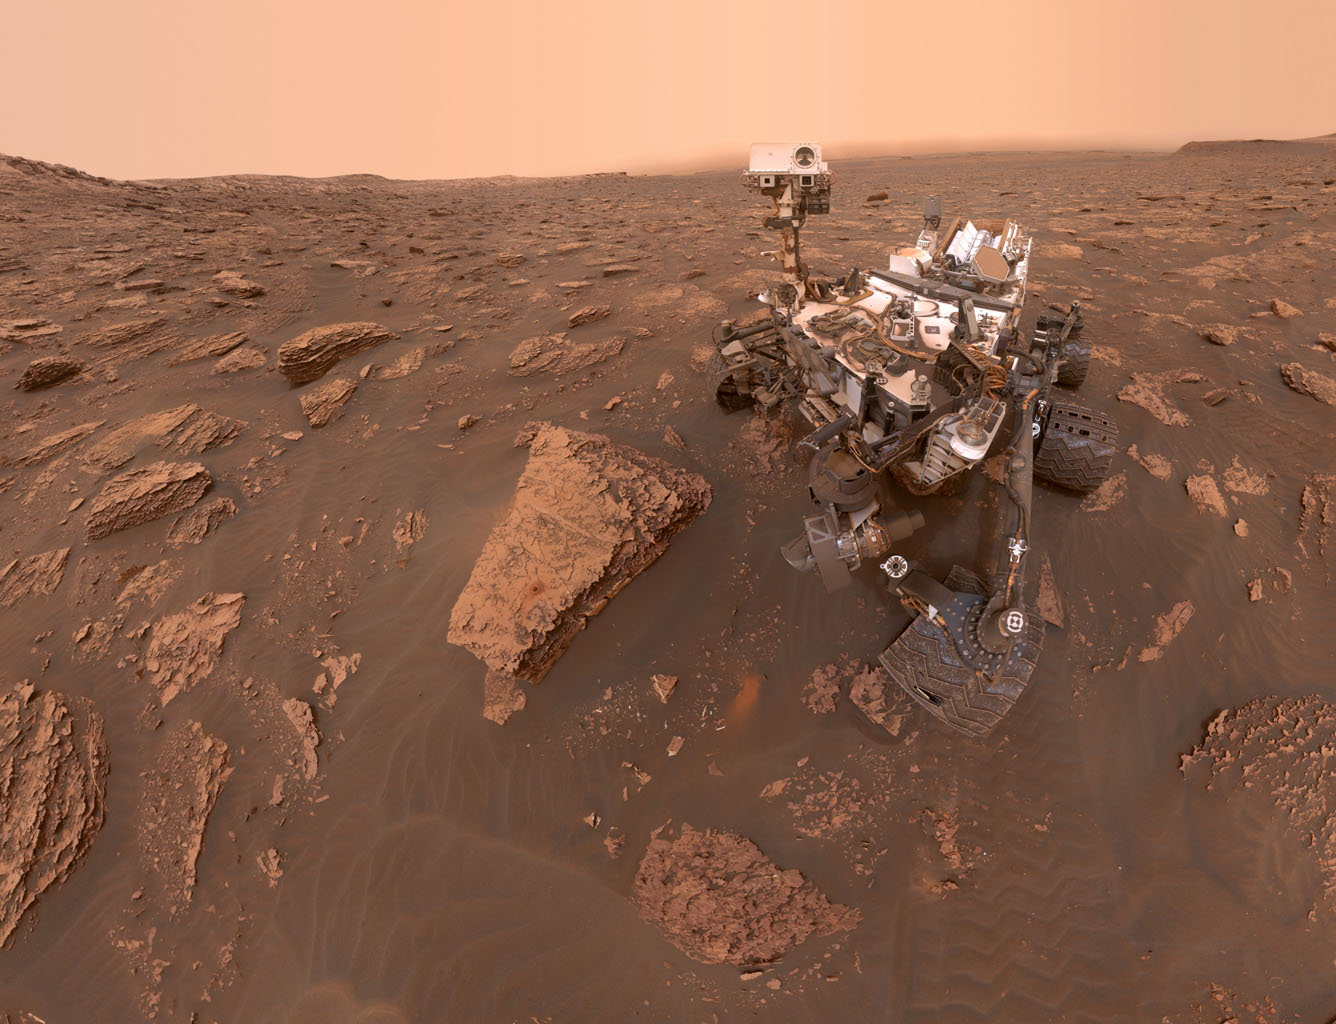 This selfie taken by NASA's Curiosity rover on Mars was released by the Jet Propulsion Laboratory in Pasadena on June 20, 2018.